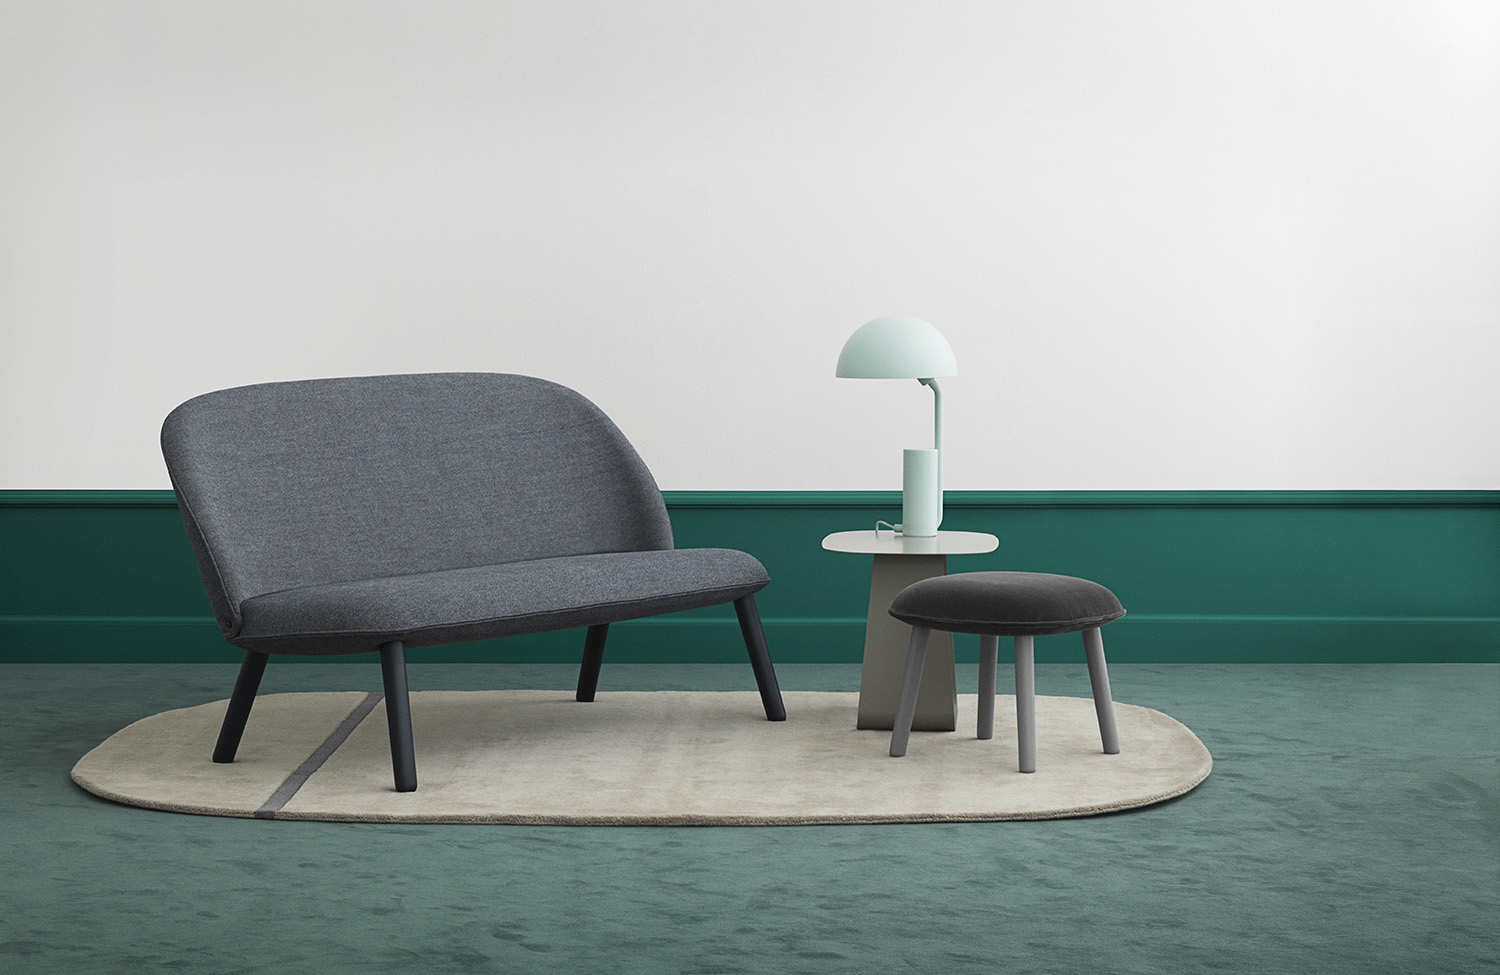 Ace chair for Normann Copenhagen